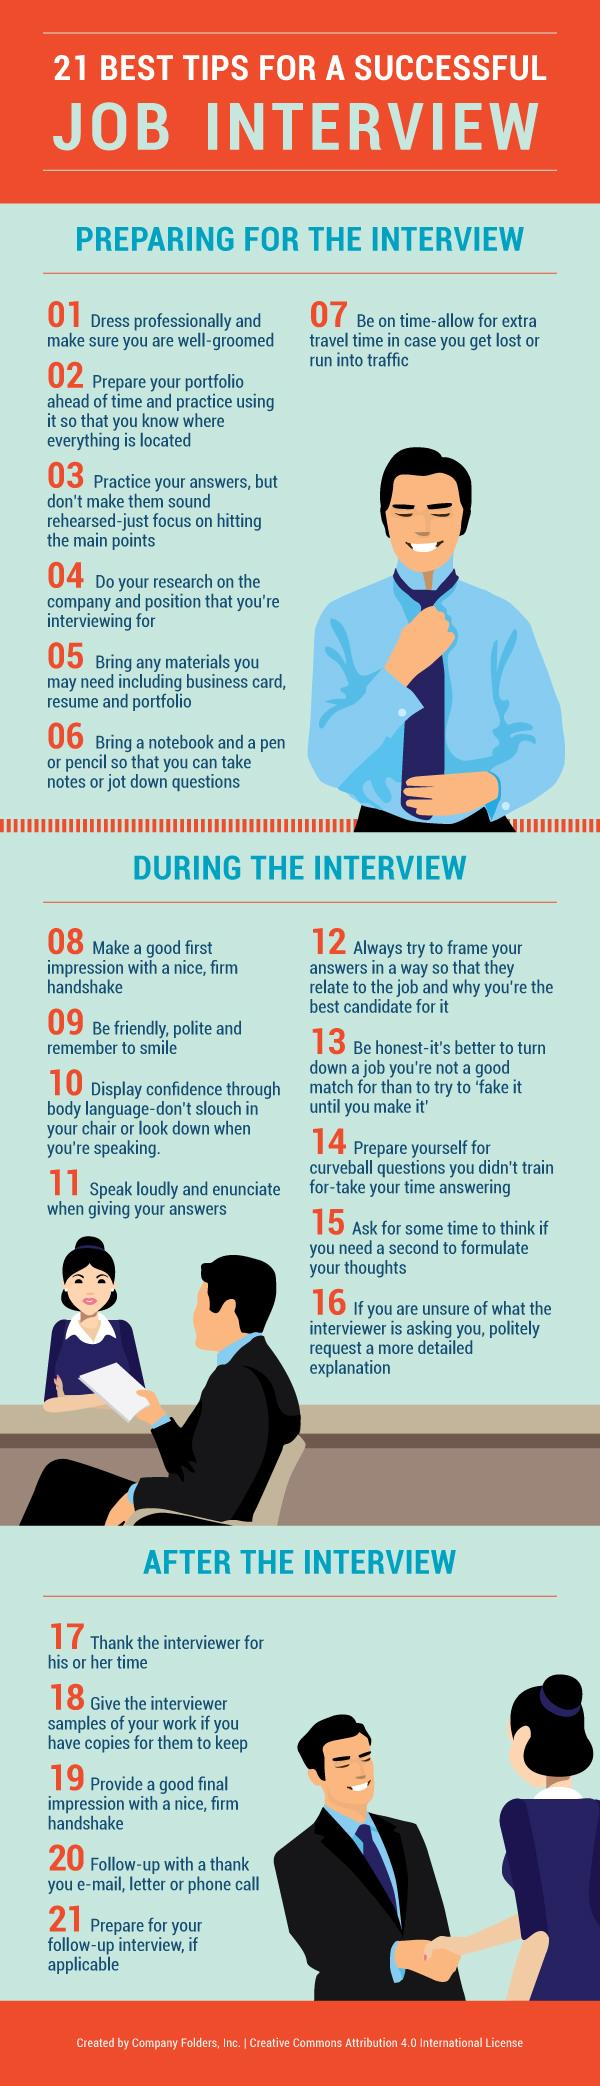 21 Tips For A Successful Job Interview [Infographic]